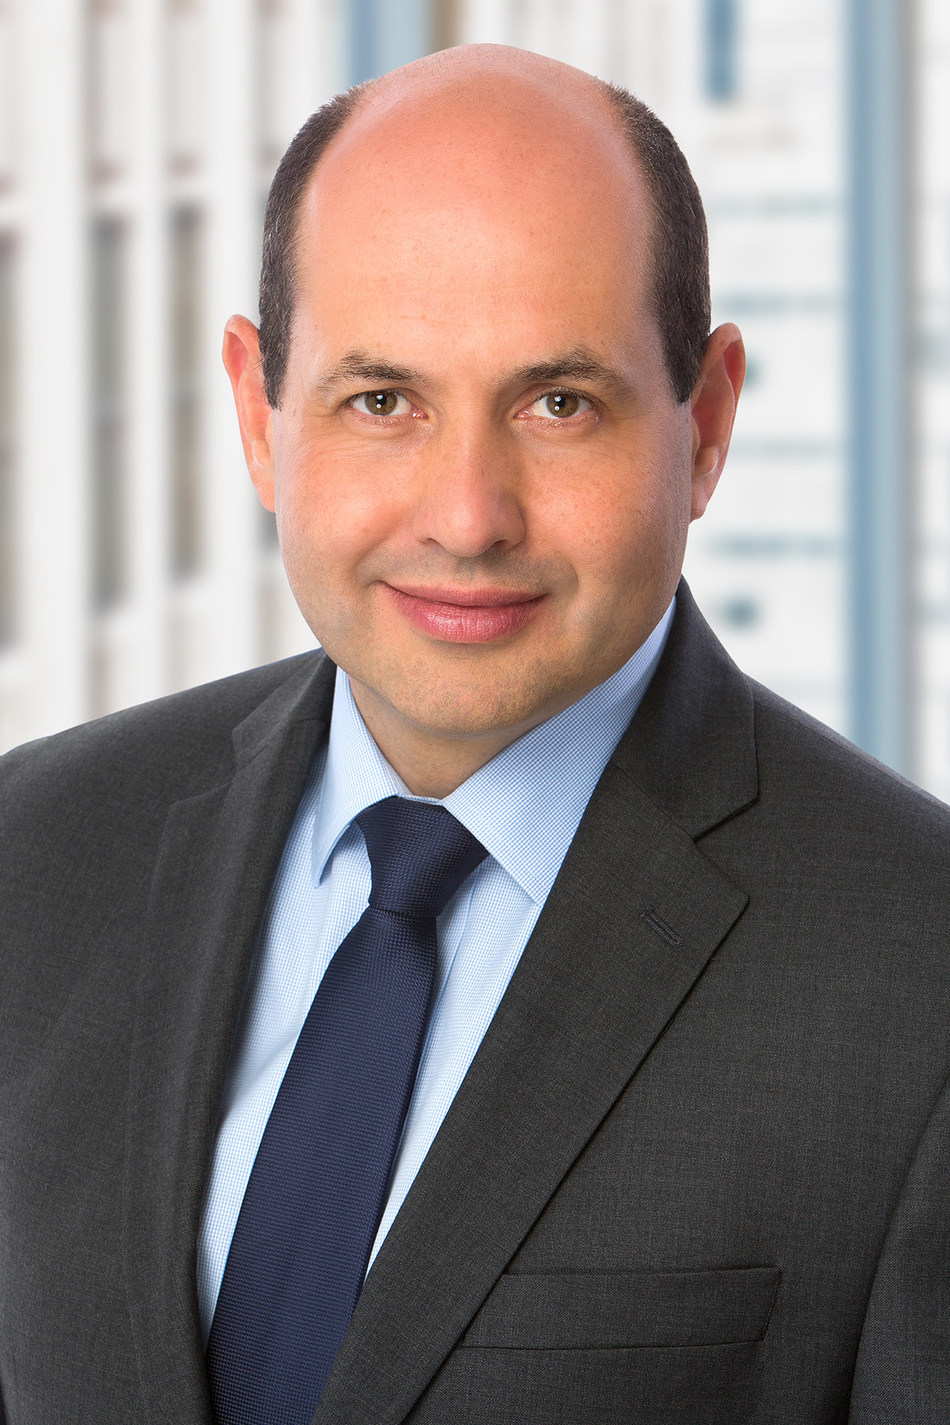 Roman Regelman, Head of Digital, BNY Mellon